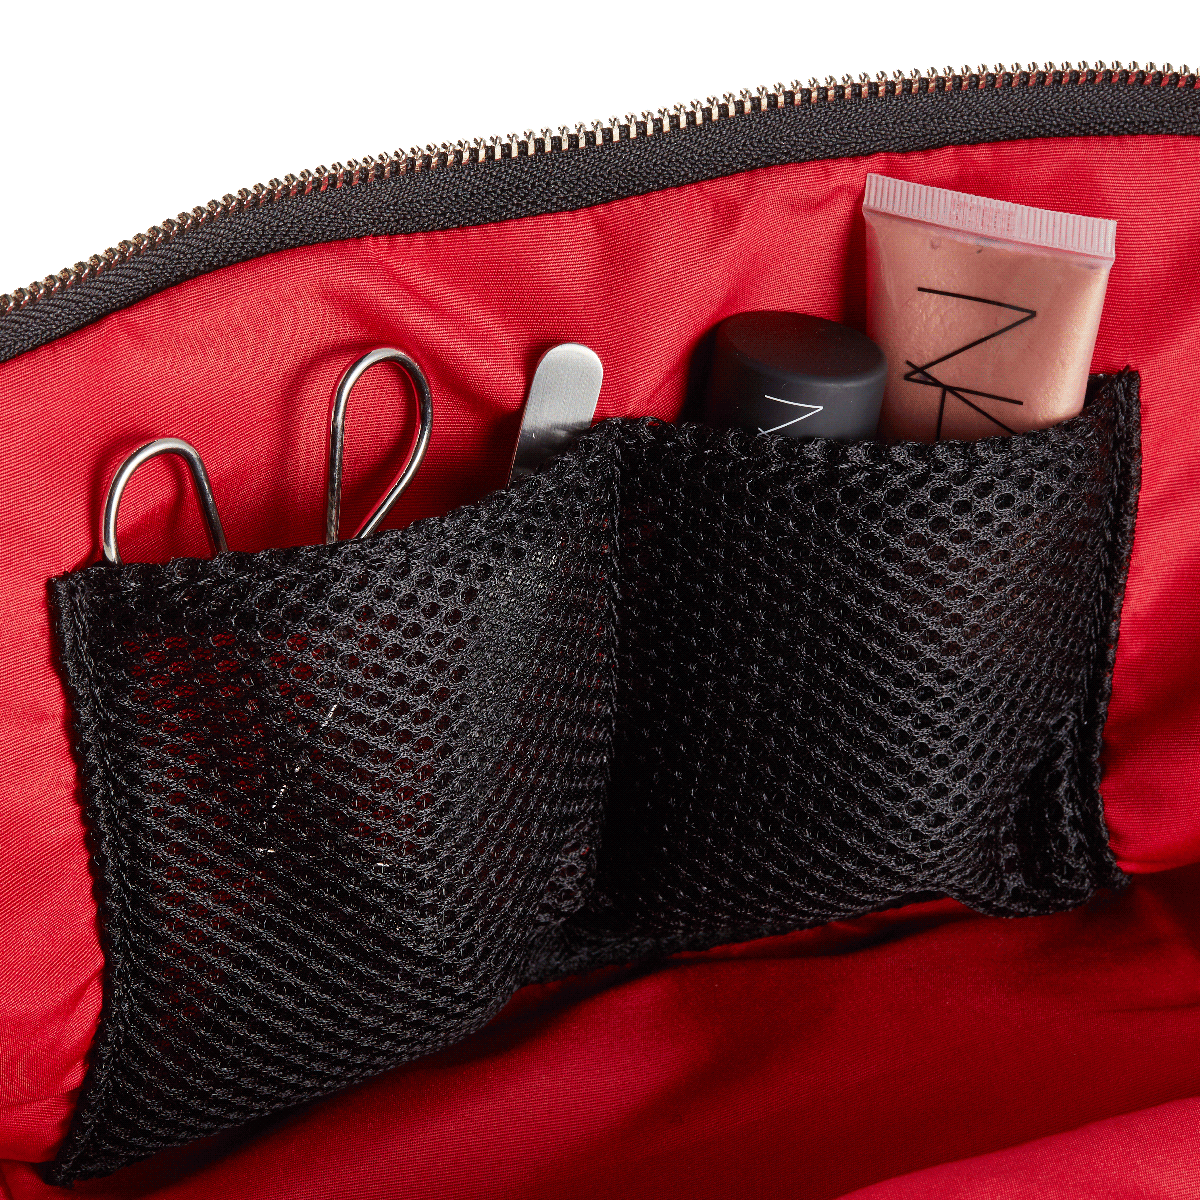 color: Satin Black Fabric with Red Interior; alt: Vacationer Large Size Makeup Bag | KUSSHI